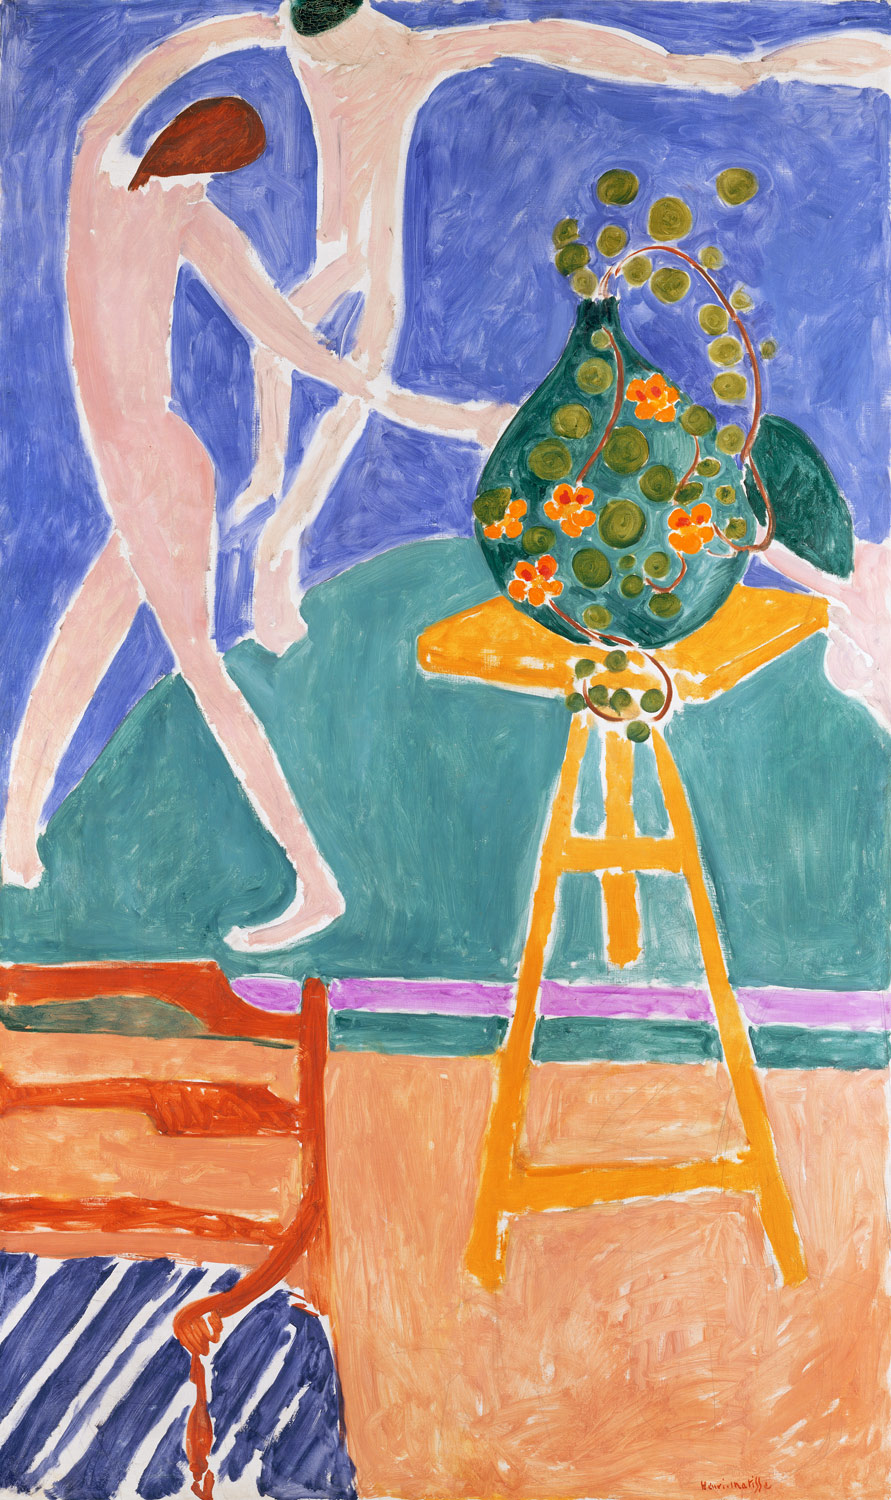 henri matisse 1869 1954 essay heilbrunn timeline of art nasturtiums the painting dance i